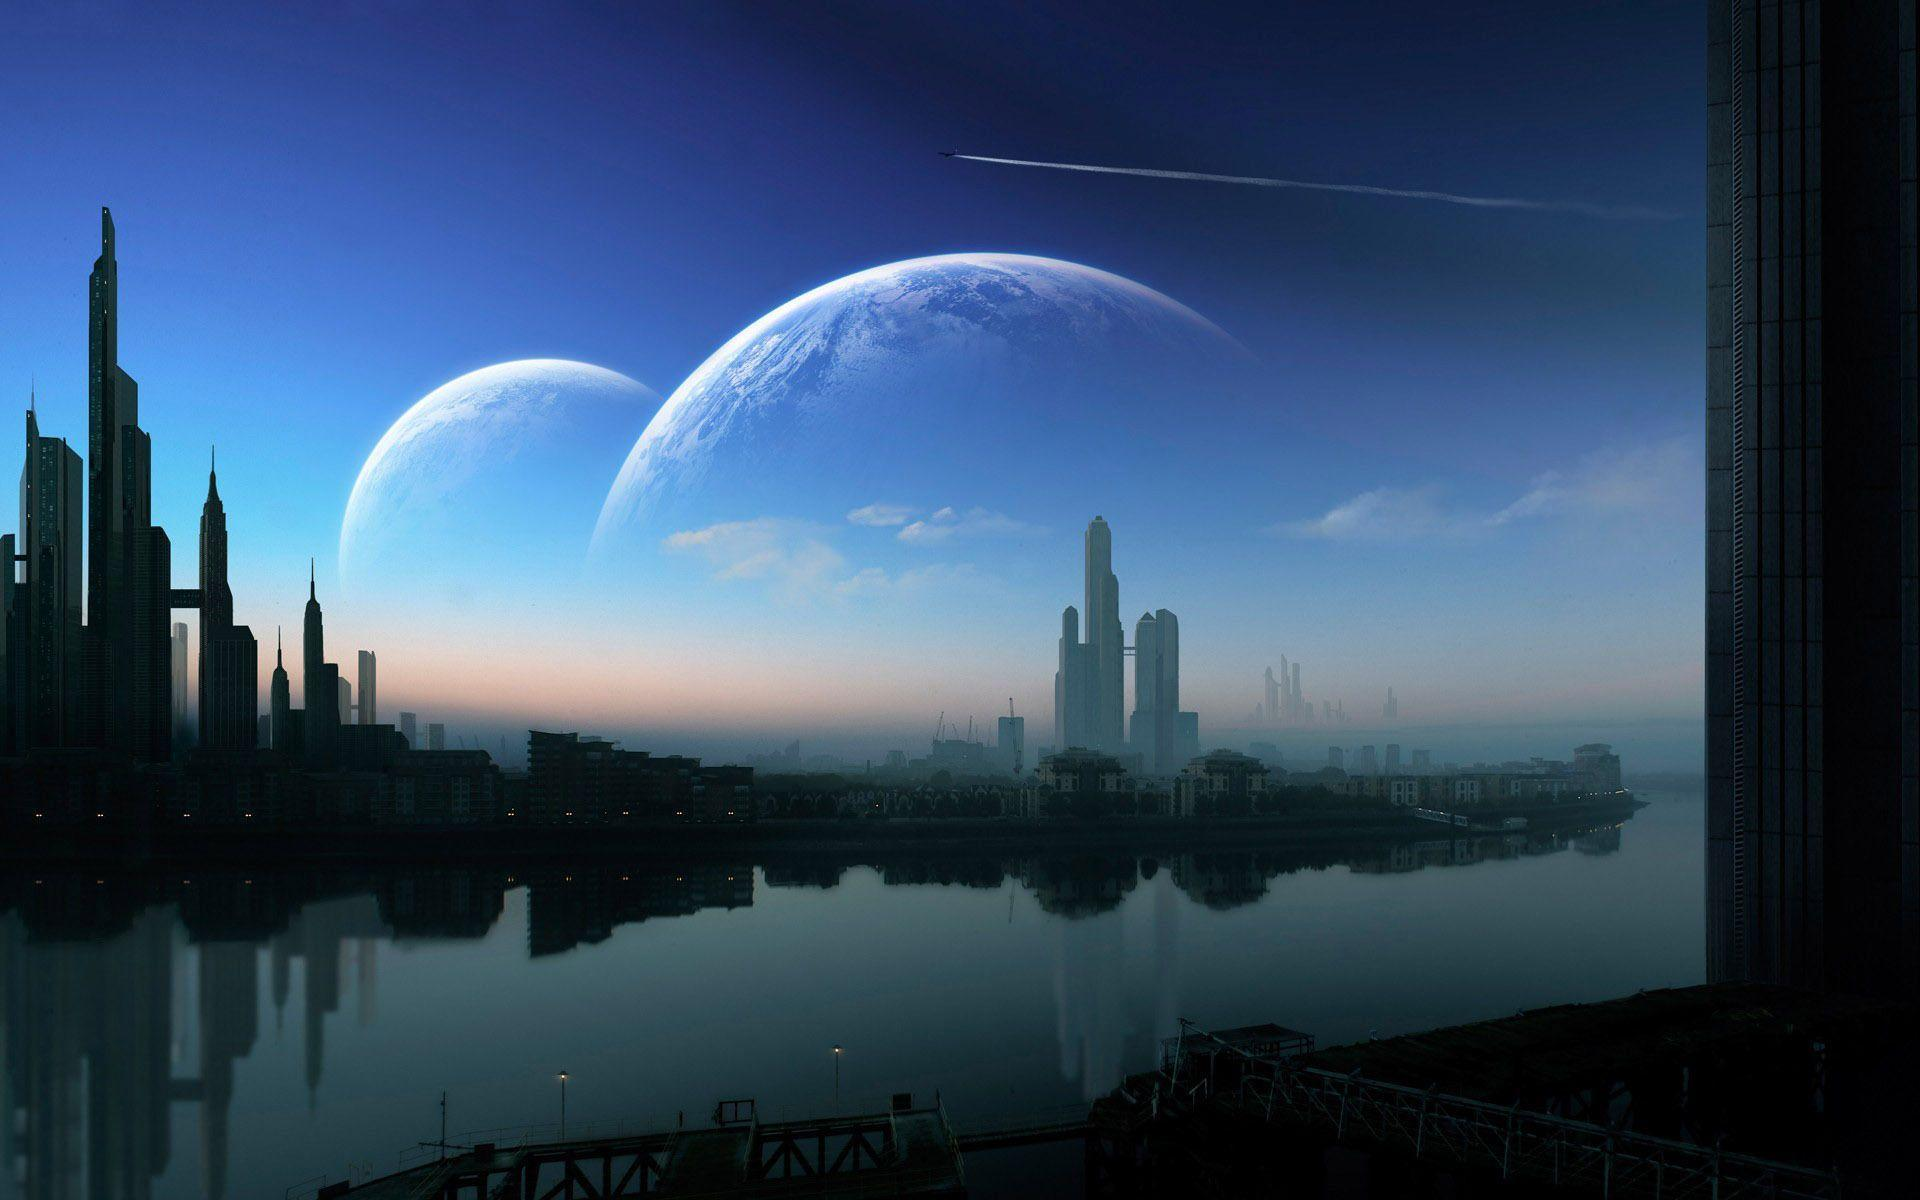 sci fi cities on other planets - photo #49